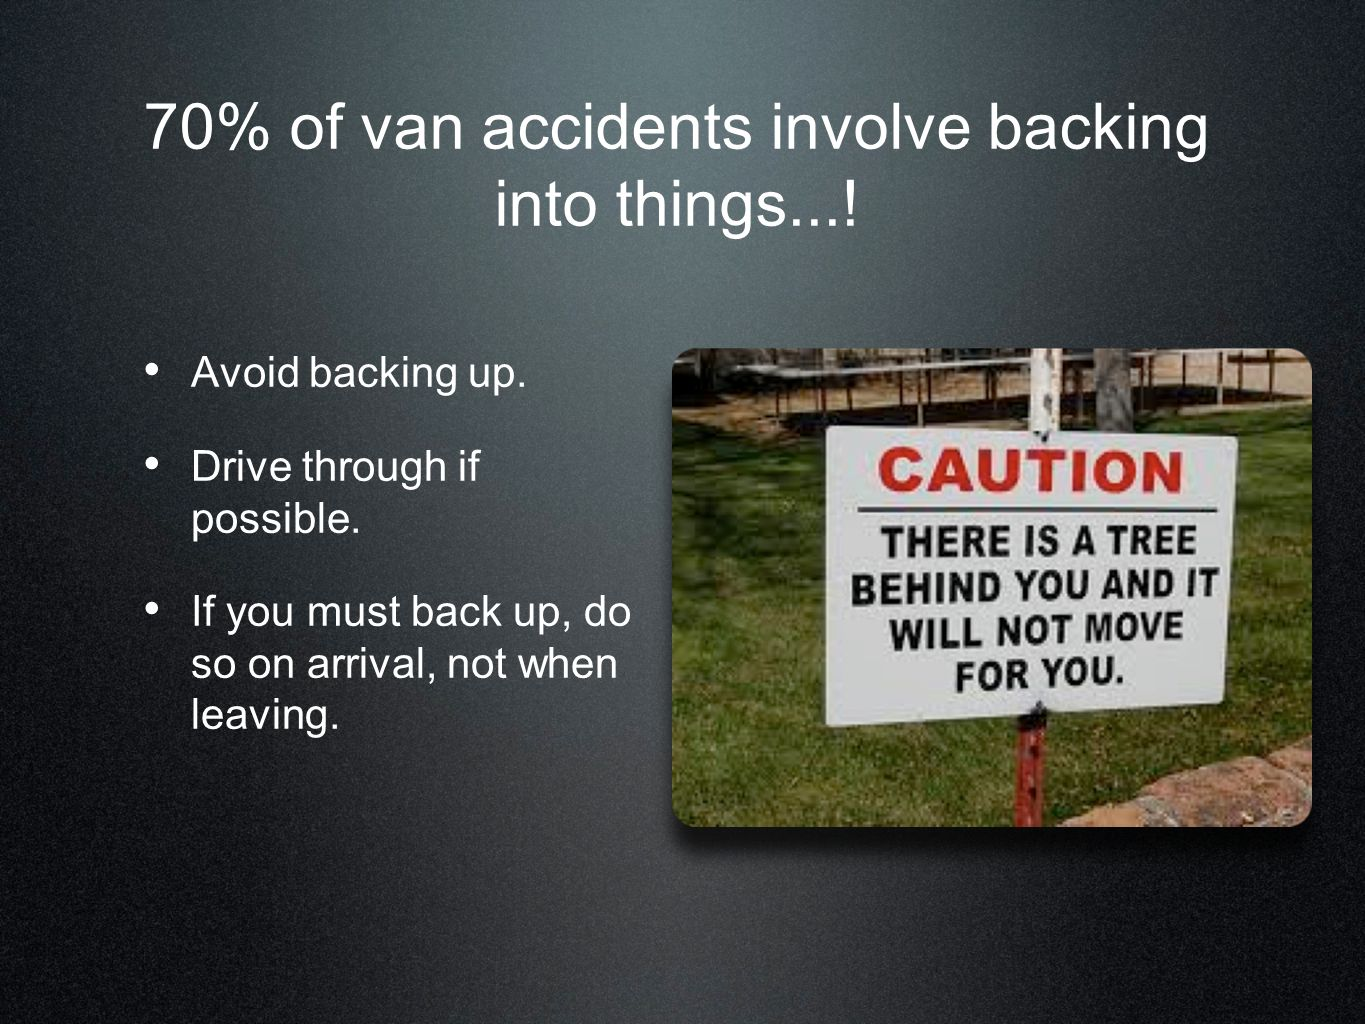 70% of van accidents involve backing into things...!